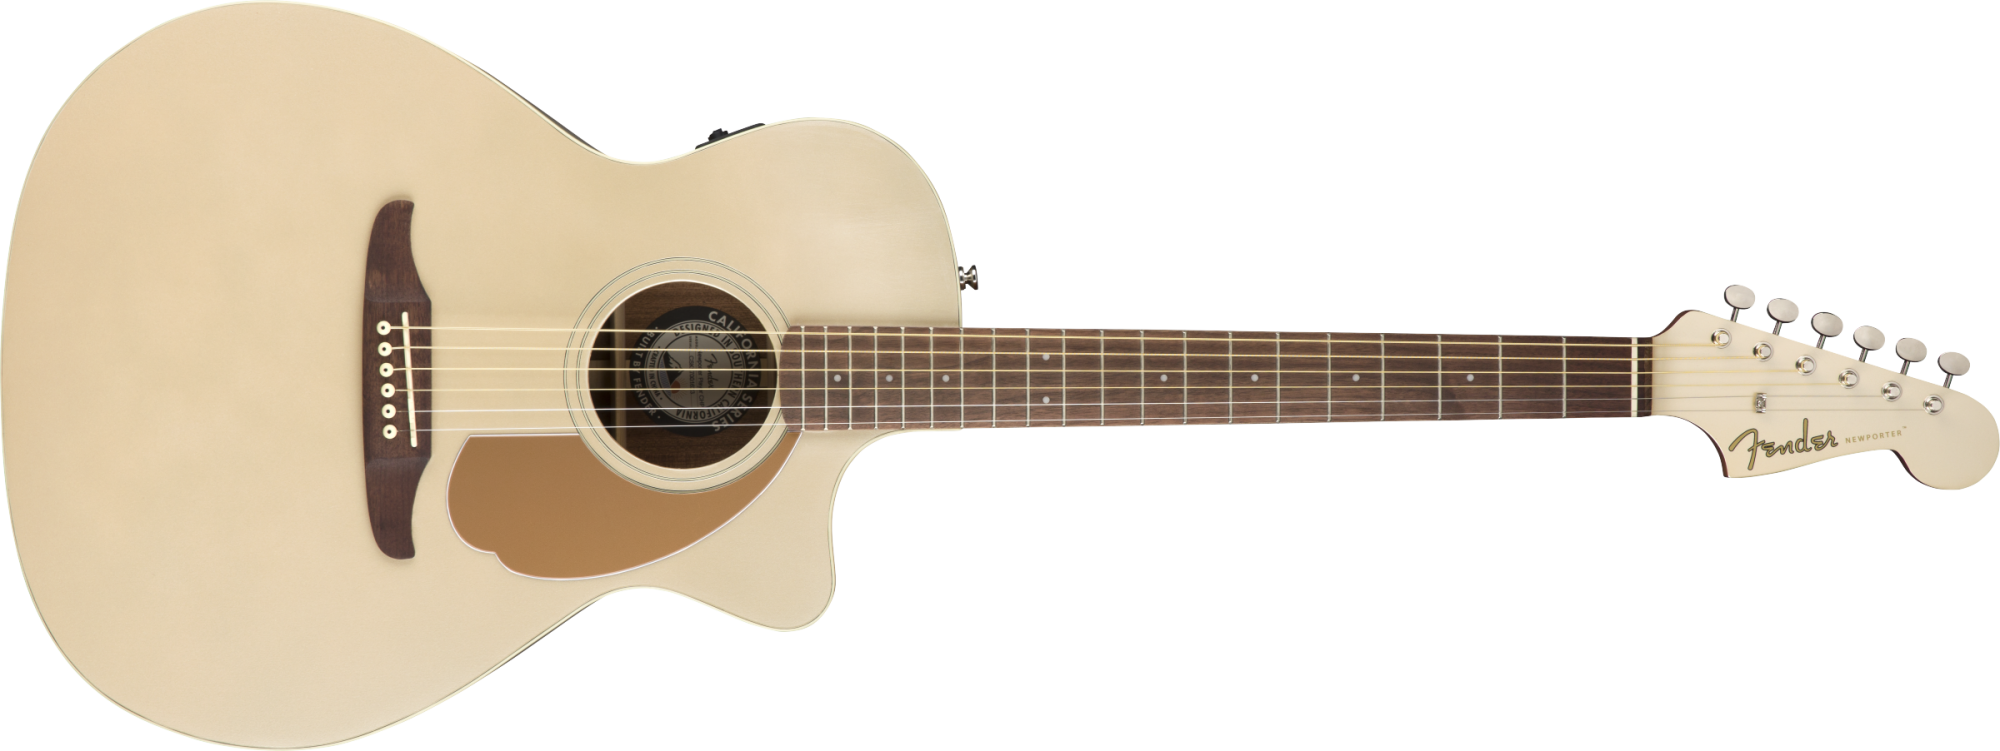 Fender Newporter Player Acoustic Guitar - Walnut Fingerboard - Champagne